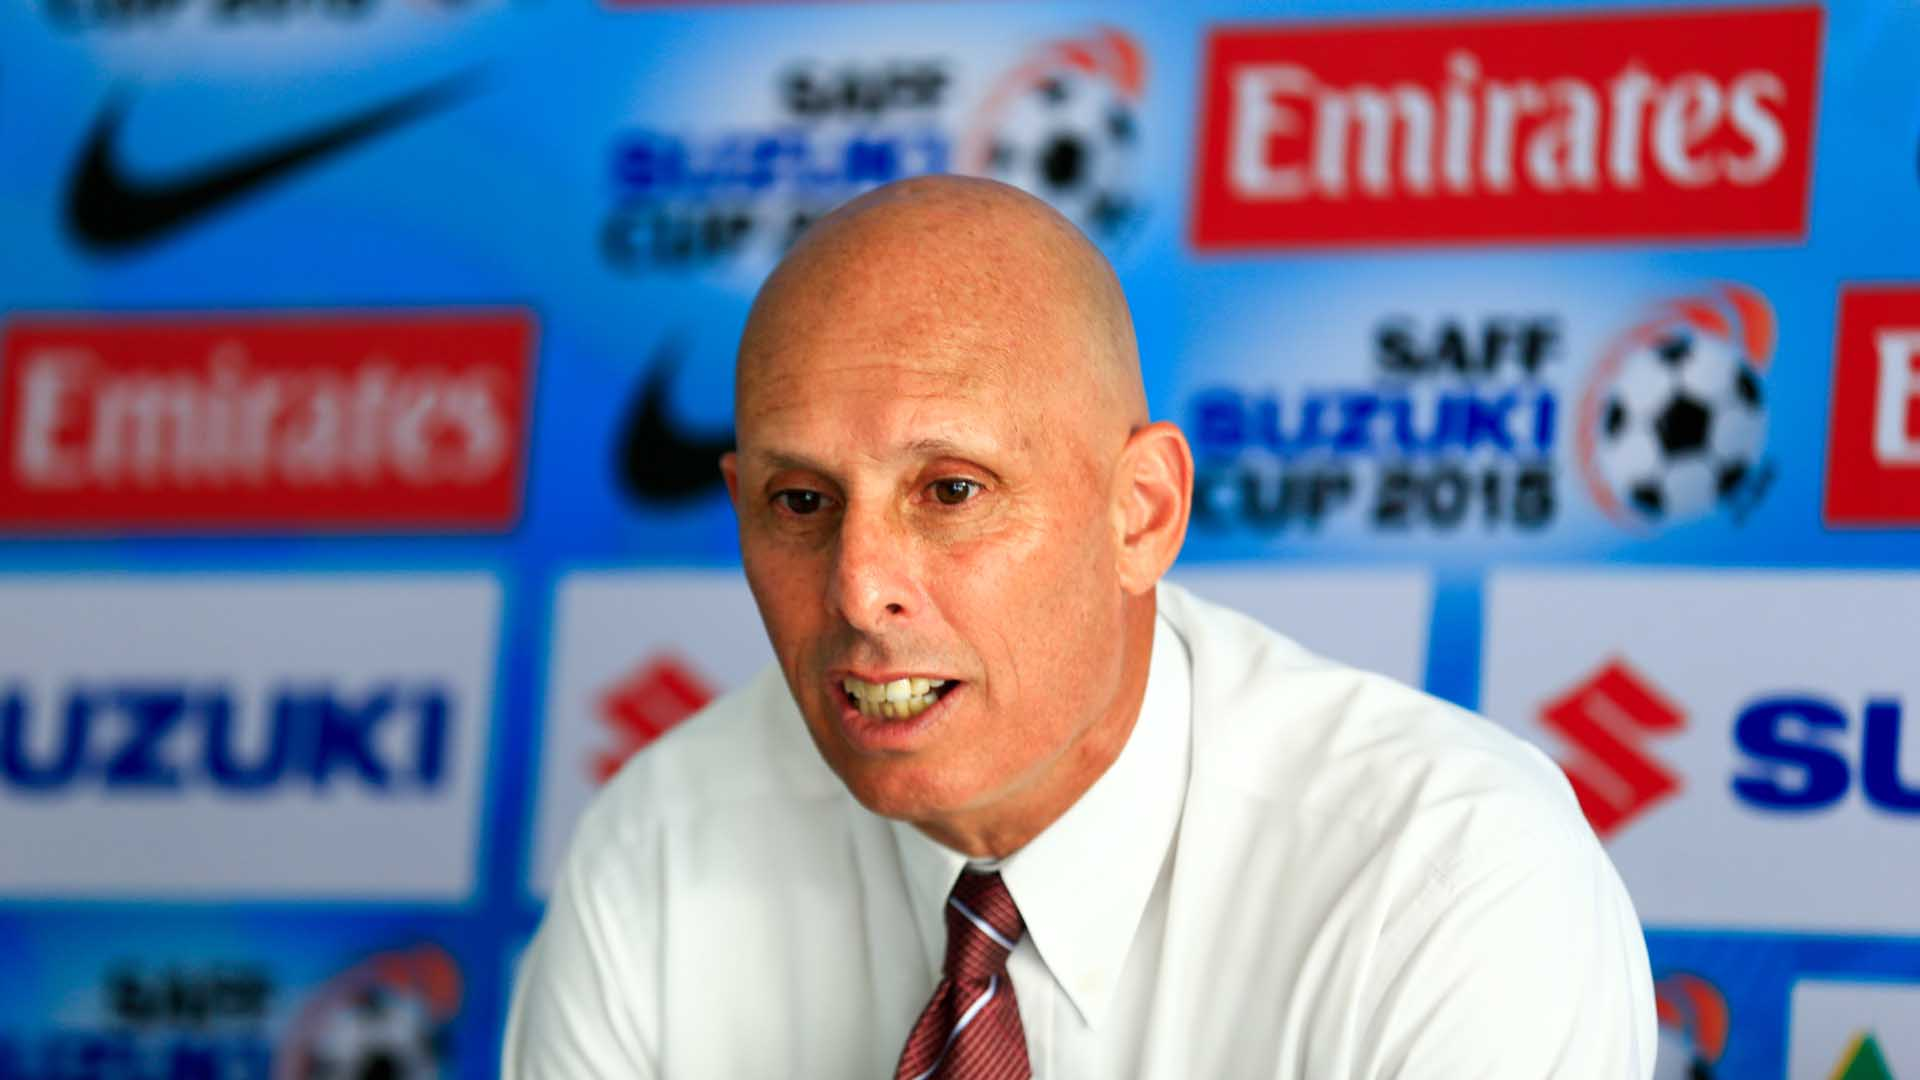 stephen constantine india maldives saff cup 2015_cl8qatyk7v1w1q3l4pmwwy86sjpgt 131405223quality100